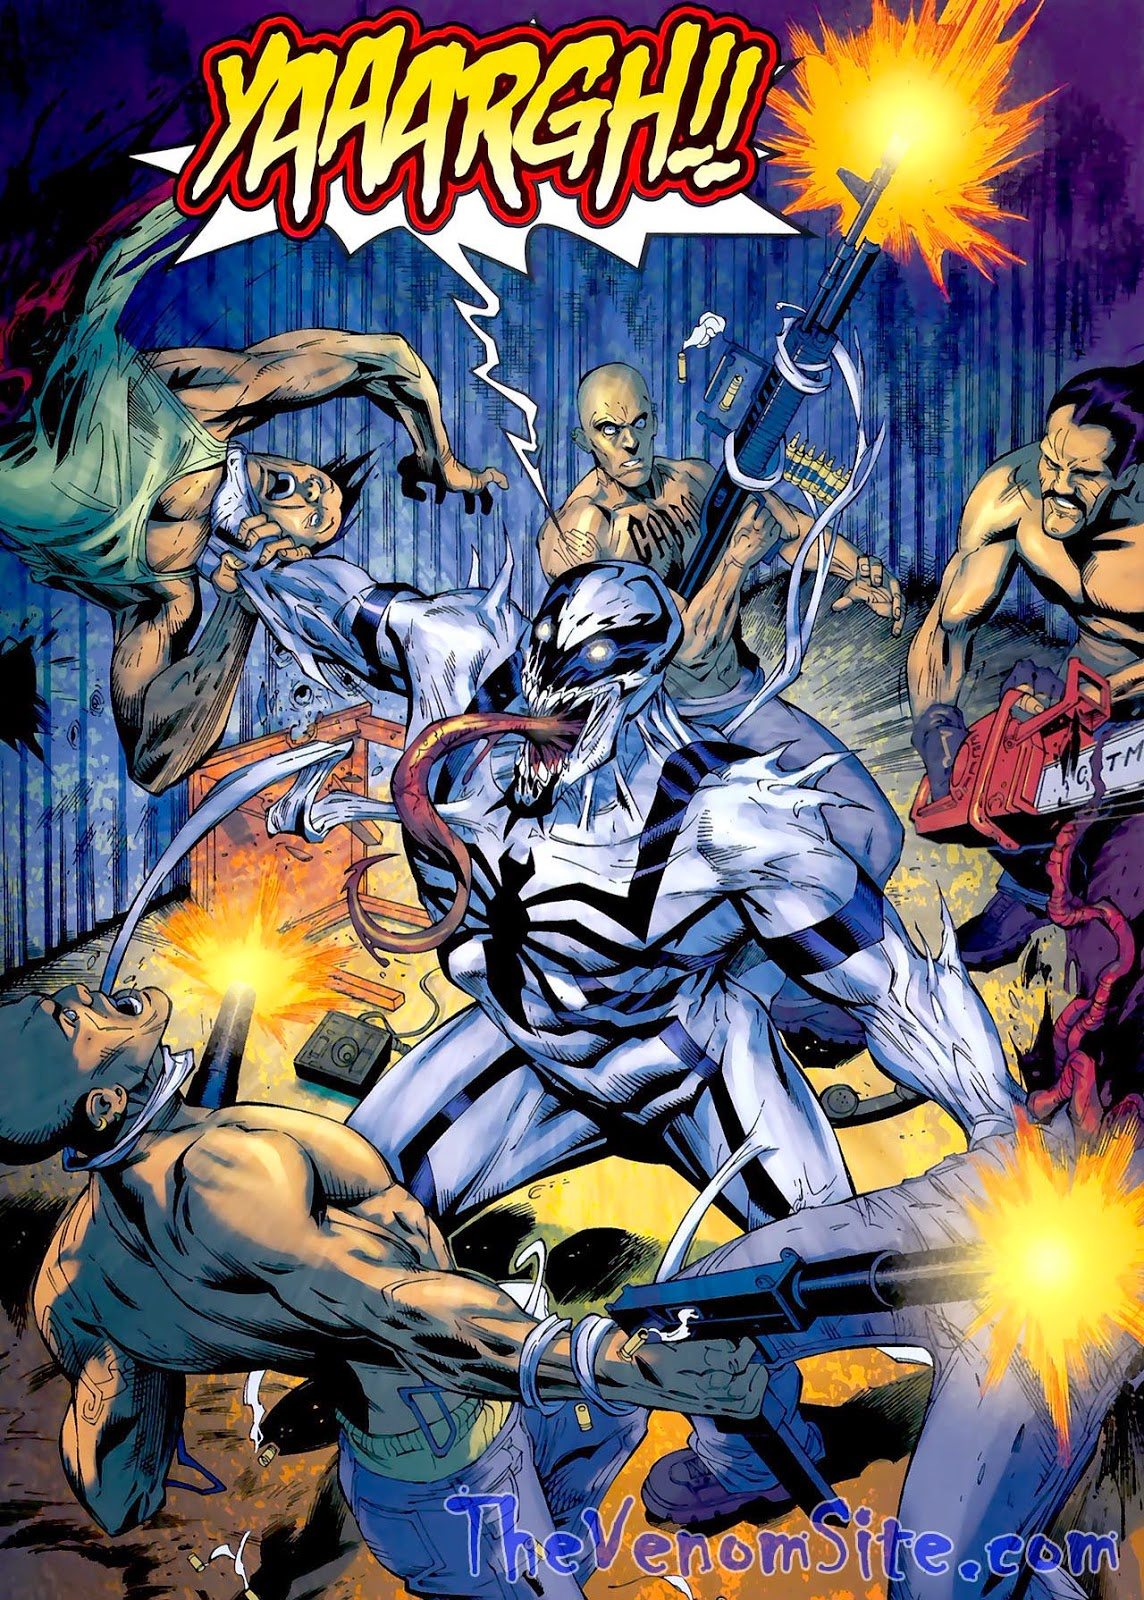 Follow Anti-Venom and Jenna Cole's adventures with the Punisher in The Amazing Spider-Man Presents: Anti-Venom: New Ways to Live